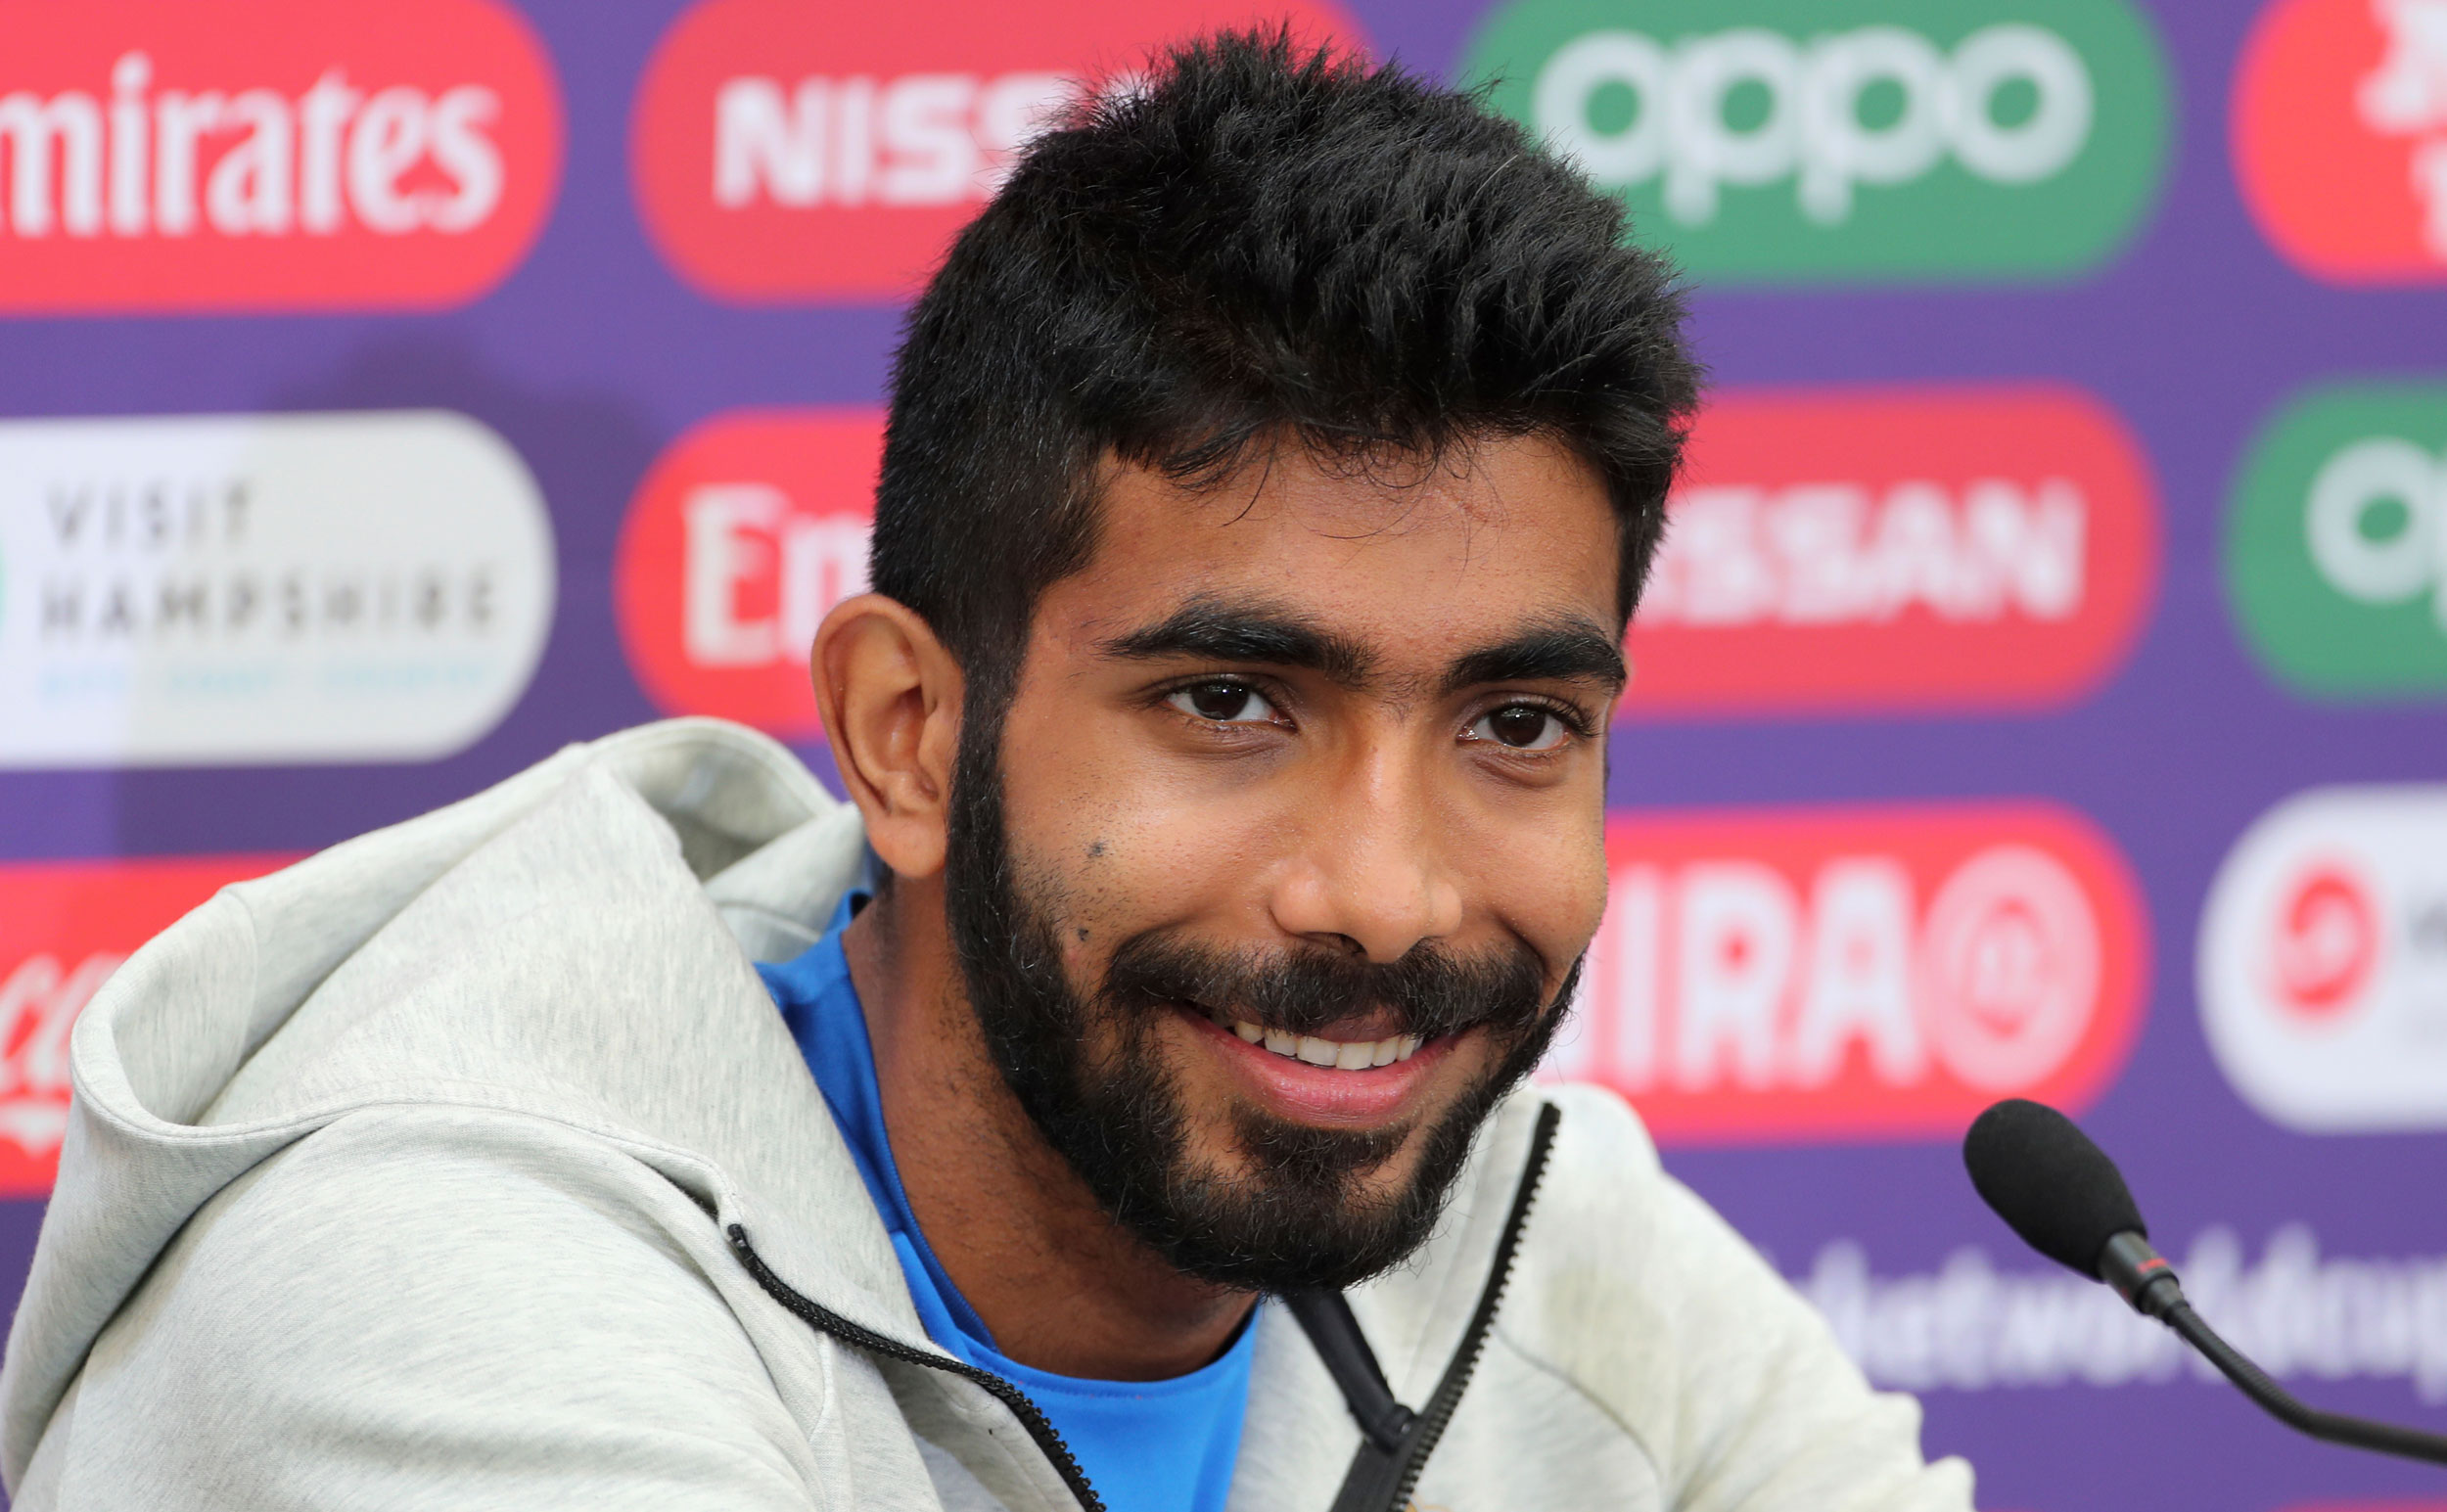 Jasprit Bumrah speaks at a press conference after attending a training session ahead of their ICC Cricket World Cup match against Afghanistan at the Hampshire Bowl in Southampton, England, on June 20, 2019.